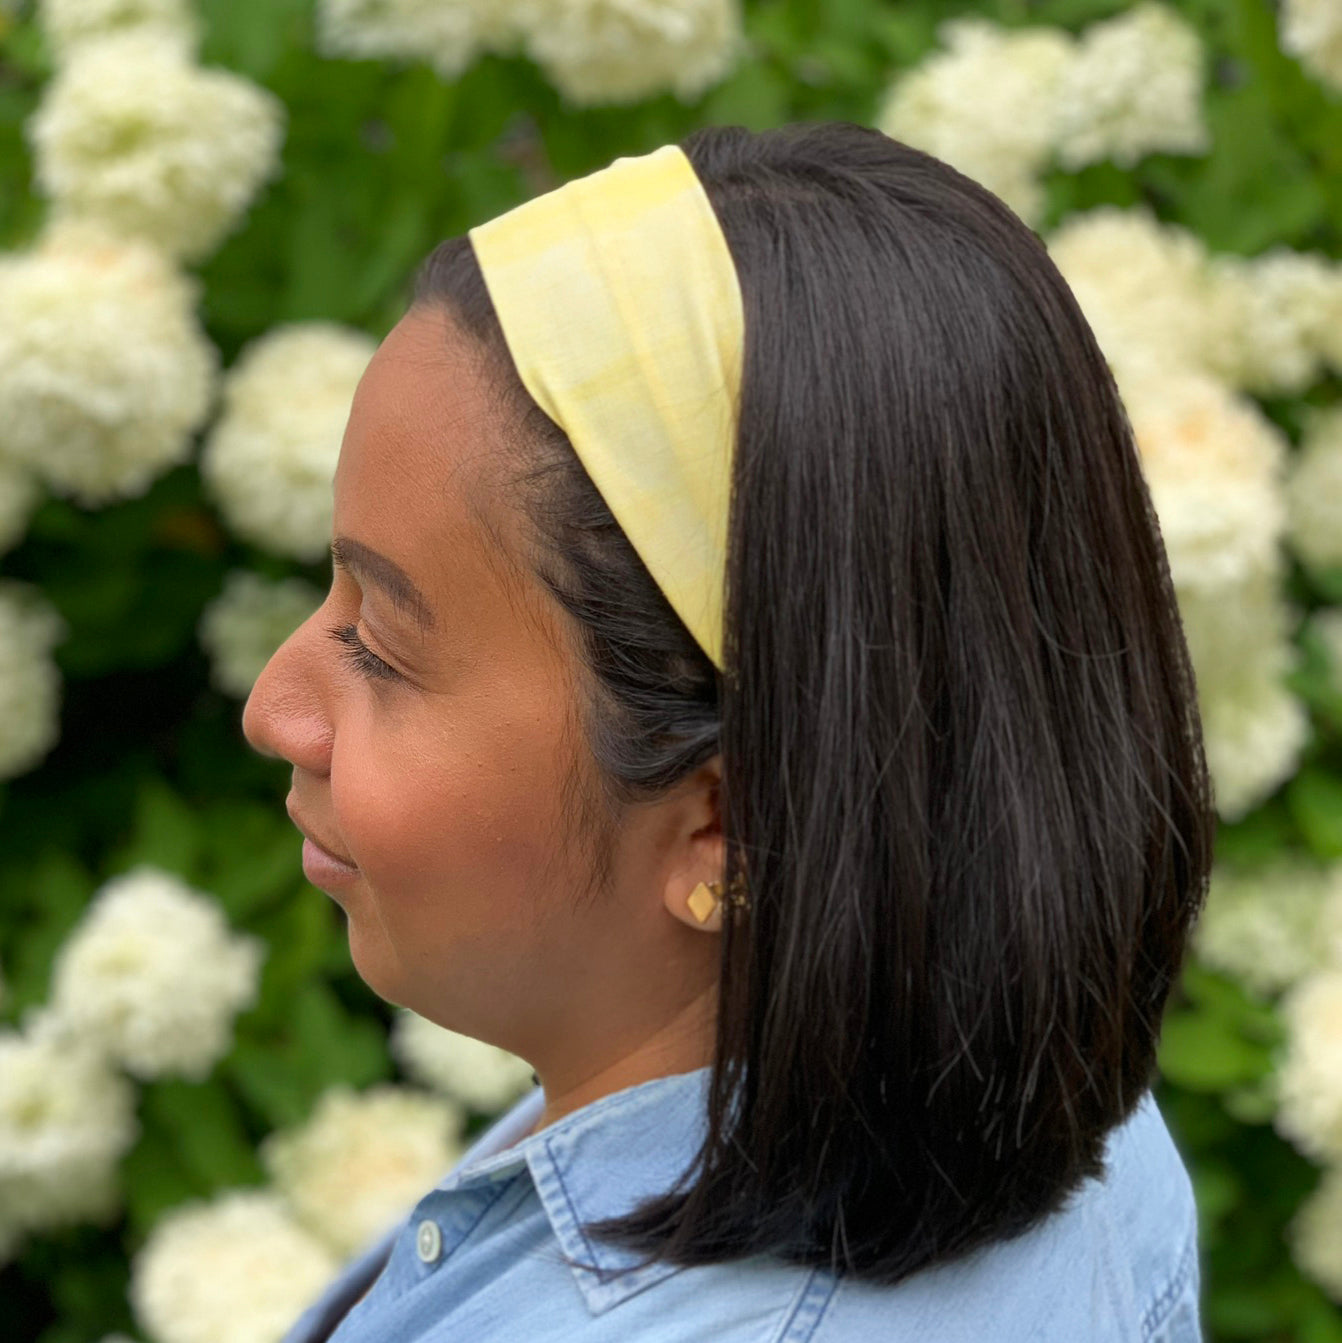 Organic cotton headband, hand dyed with natural pigment